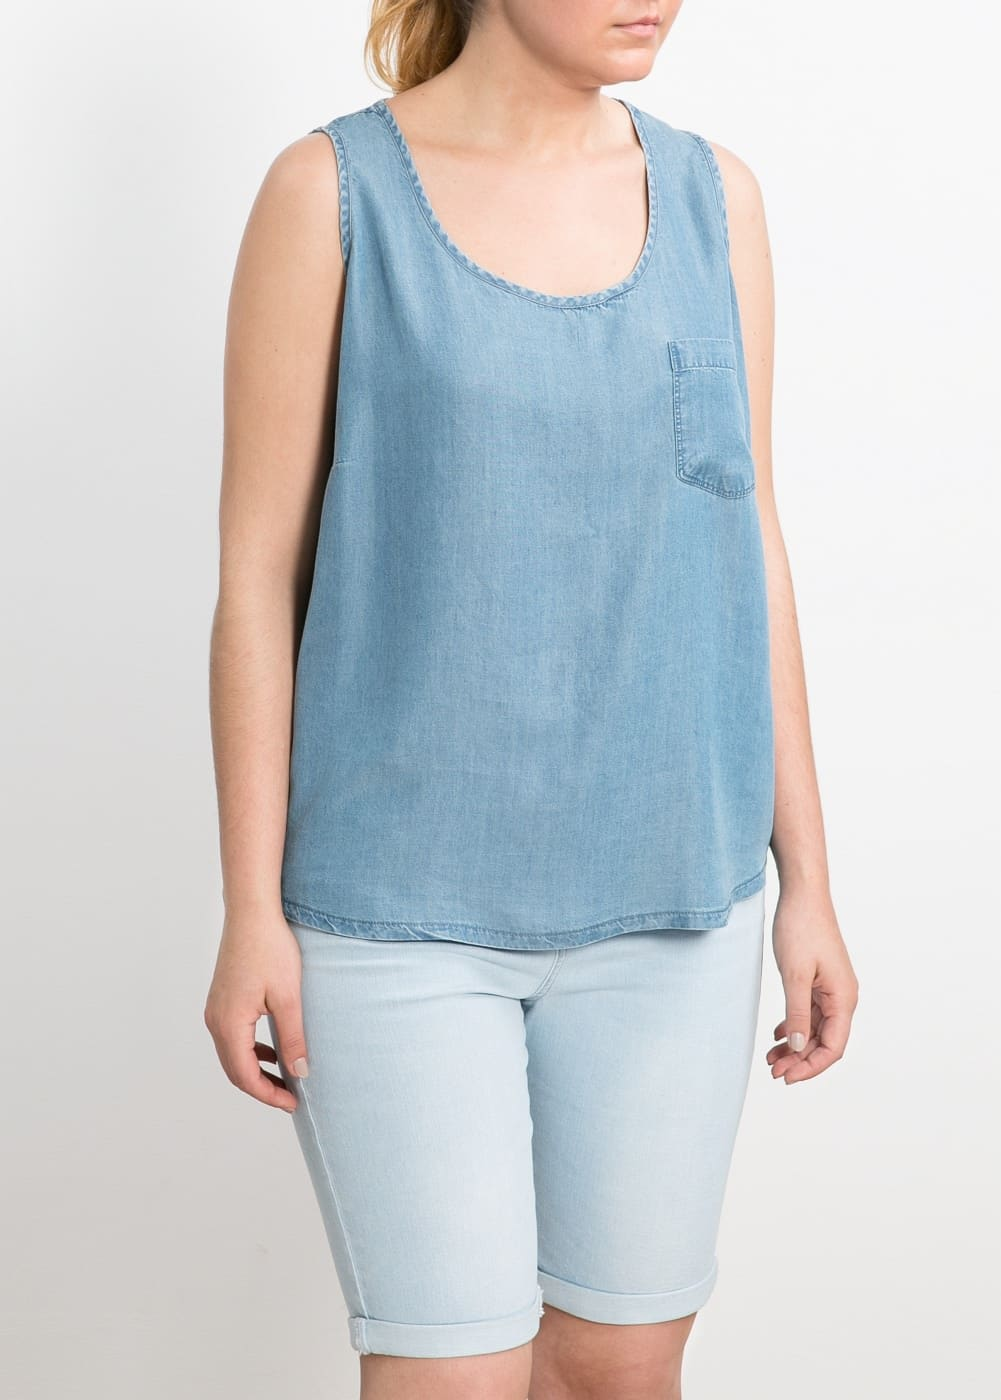 Soft fabric top